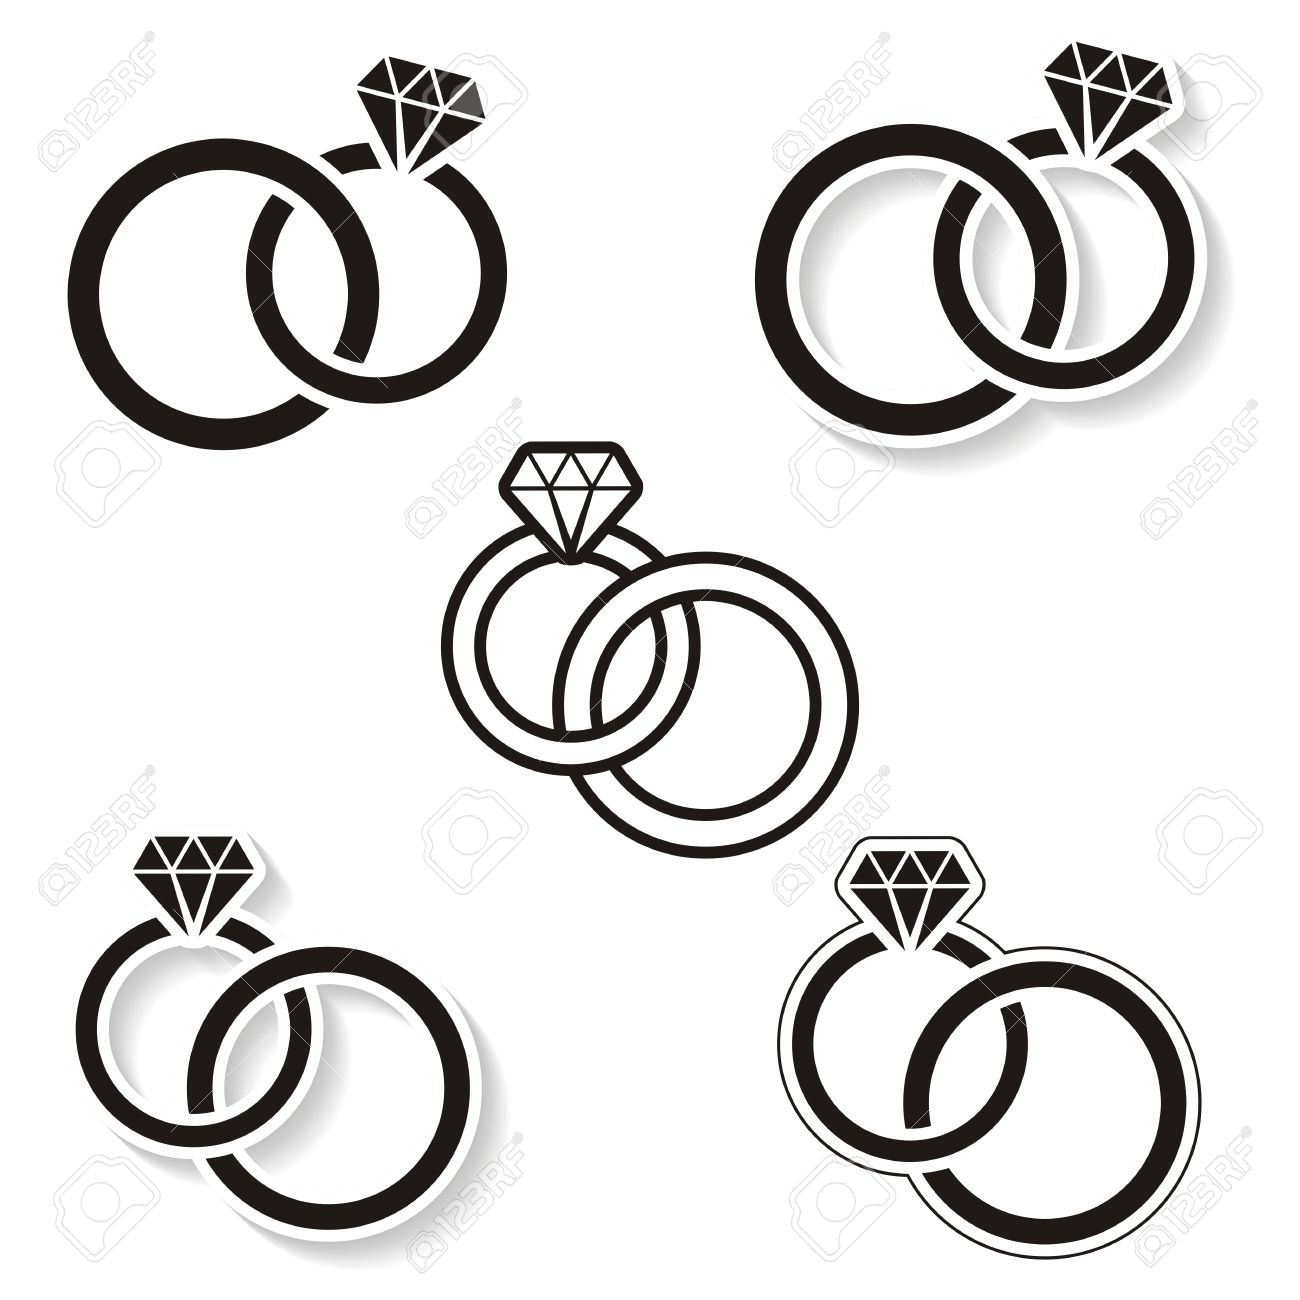 Wedding rings symbol  Black Wedding Rings Icon On White Background Royalty Free Cliparts ...